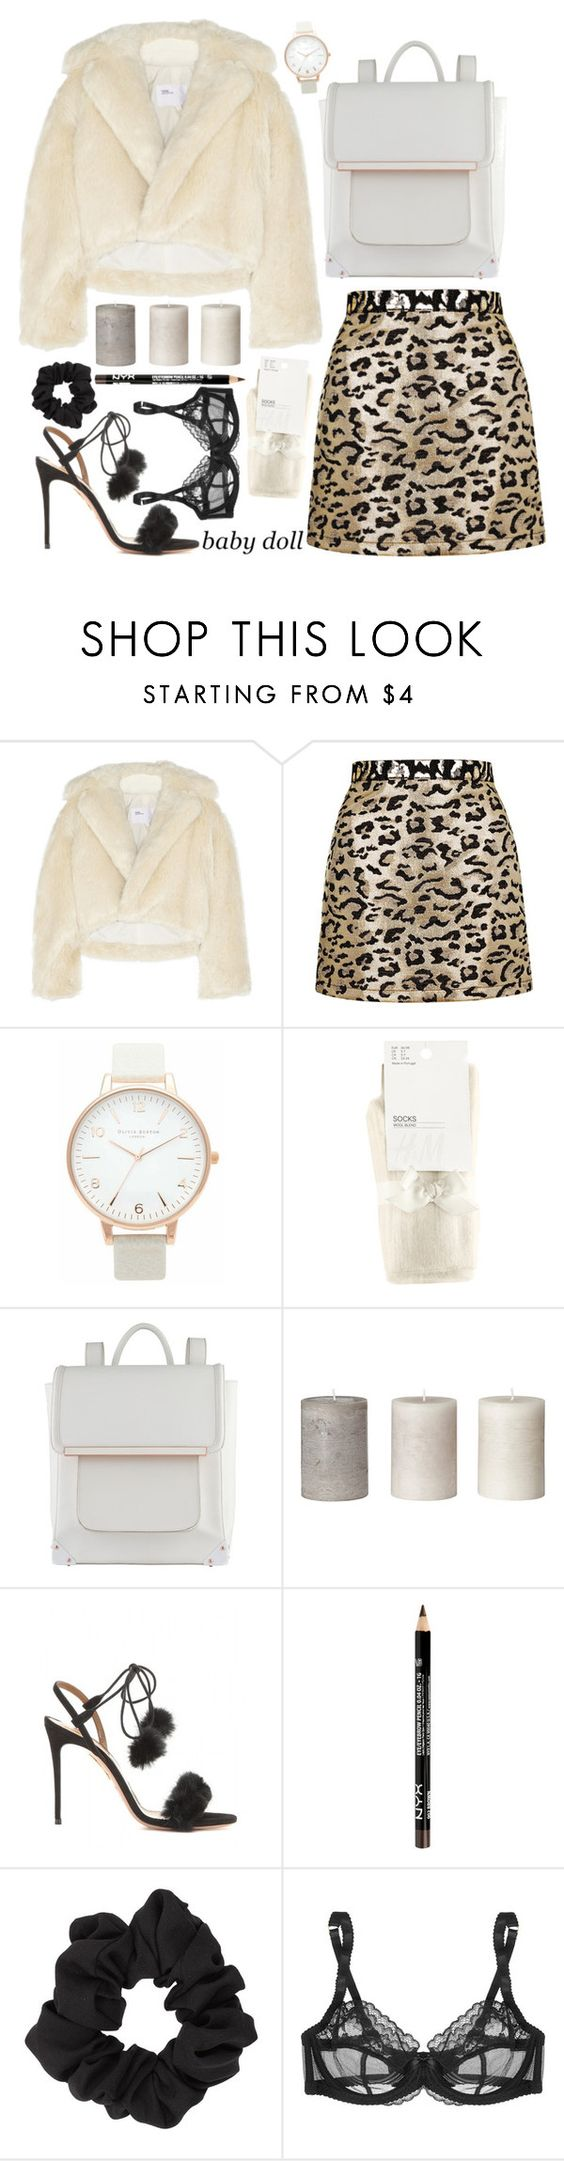 """""""Untitled #141"""" by francescas-closet ❤ liked on Polyvore featuring Toga, Topshop, Olivia Burton, H&M, ALDO, Aquazzura, Miss Selfridge, L'Agent By Agent Provocateur, women's clothing and women's fashion"""